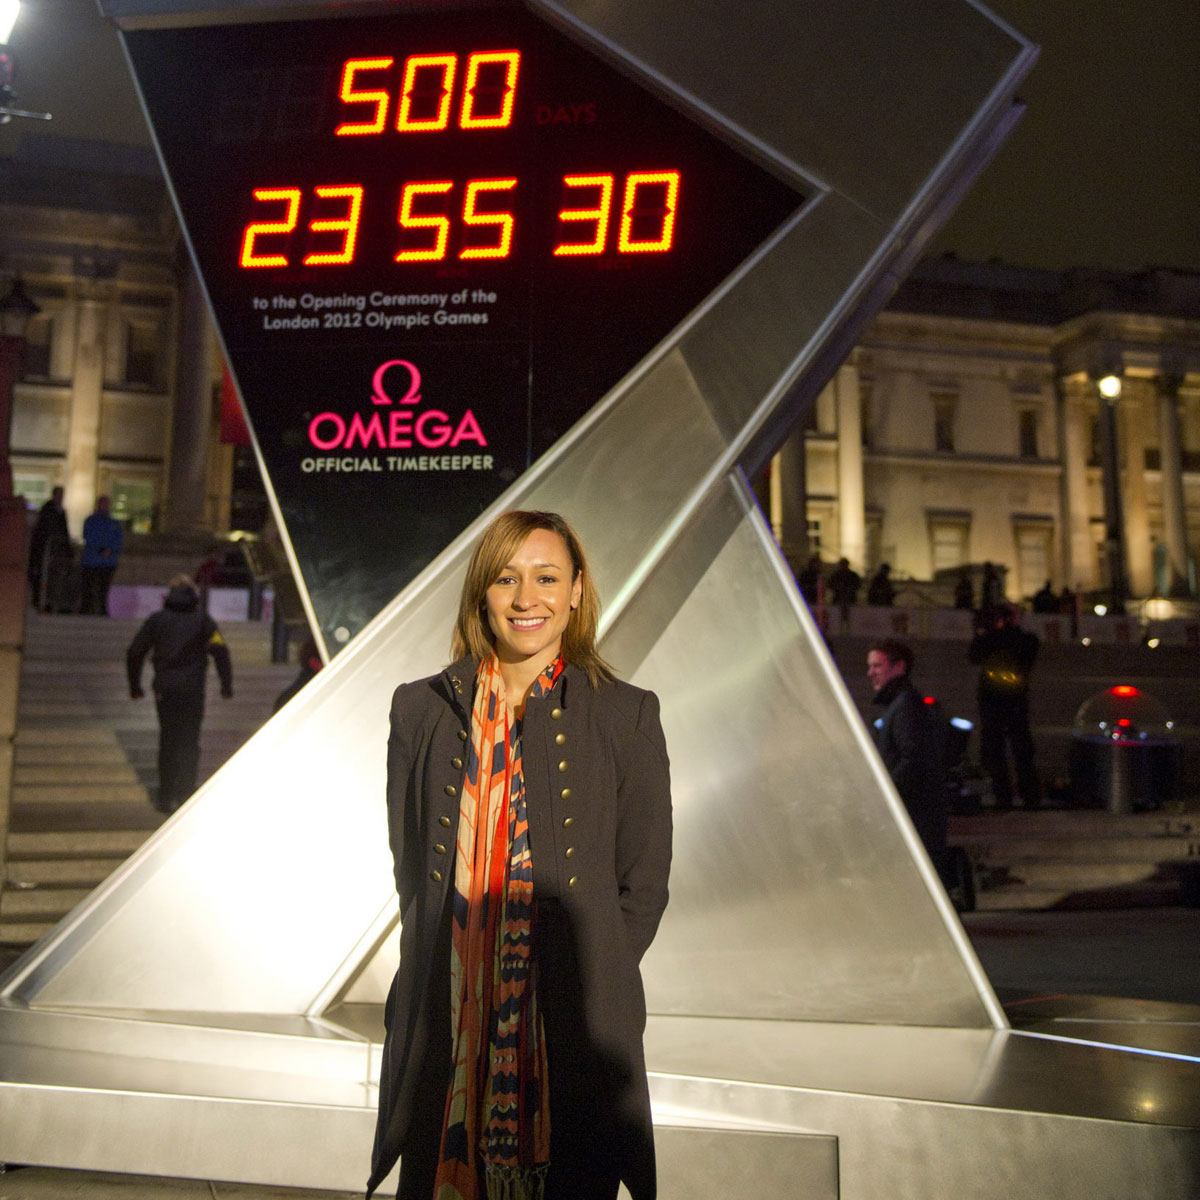 The Watch Quote: Photo - London 2012 and Omega launch Countdown Clock to the Olympic Games